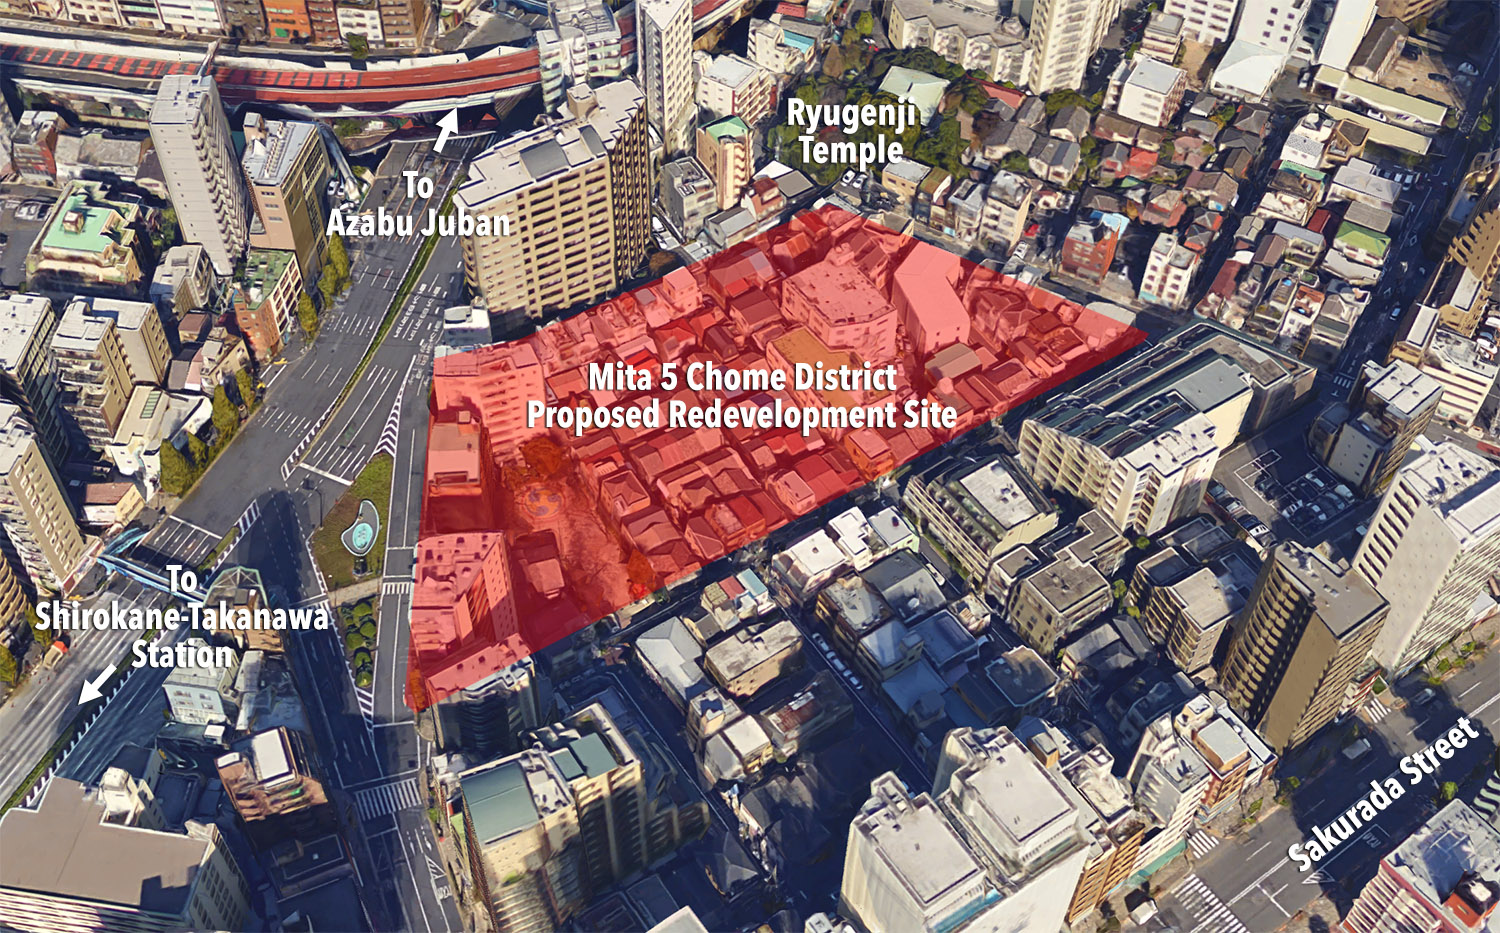 Tokyo's Mita 5 Chome district to see potential residential redevelopment